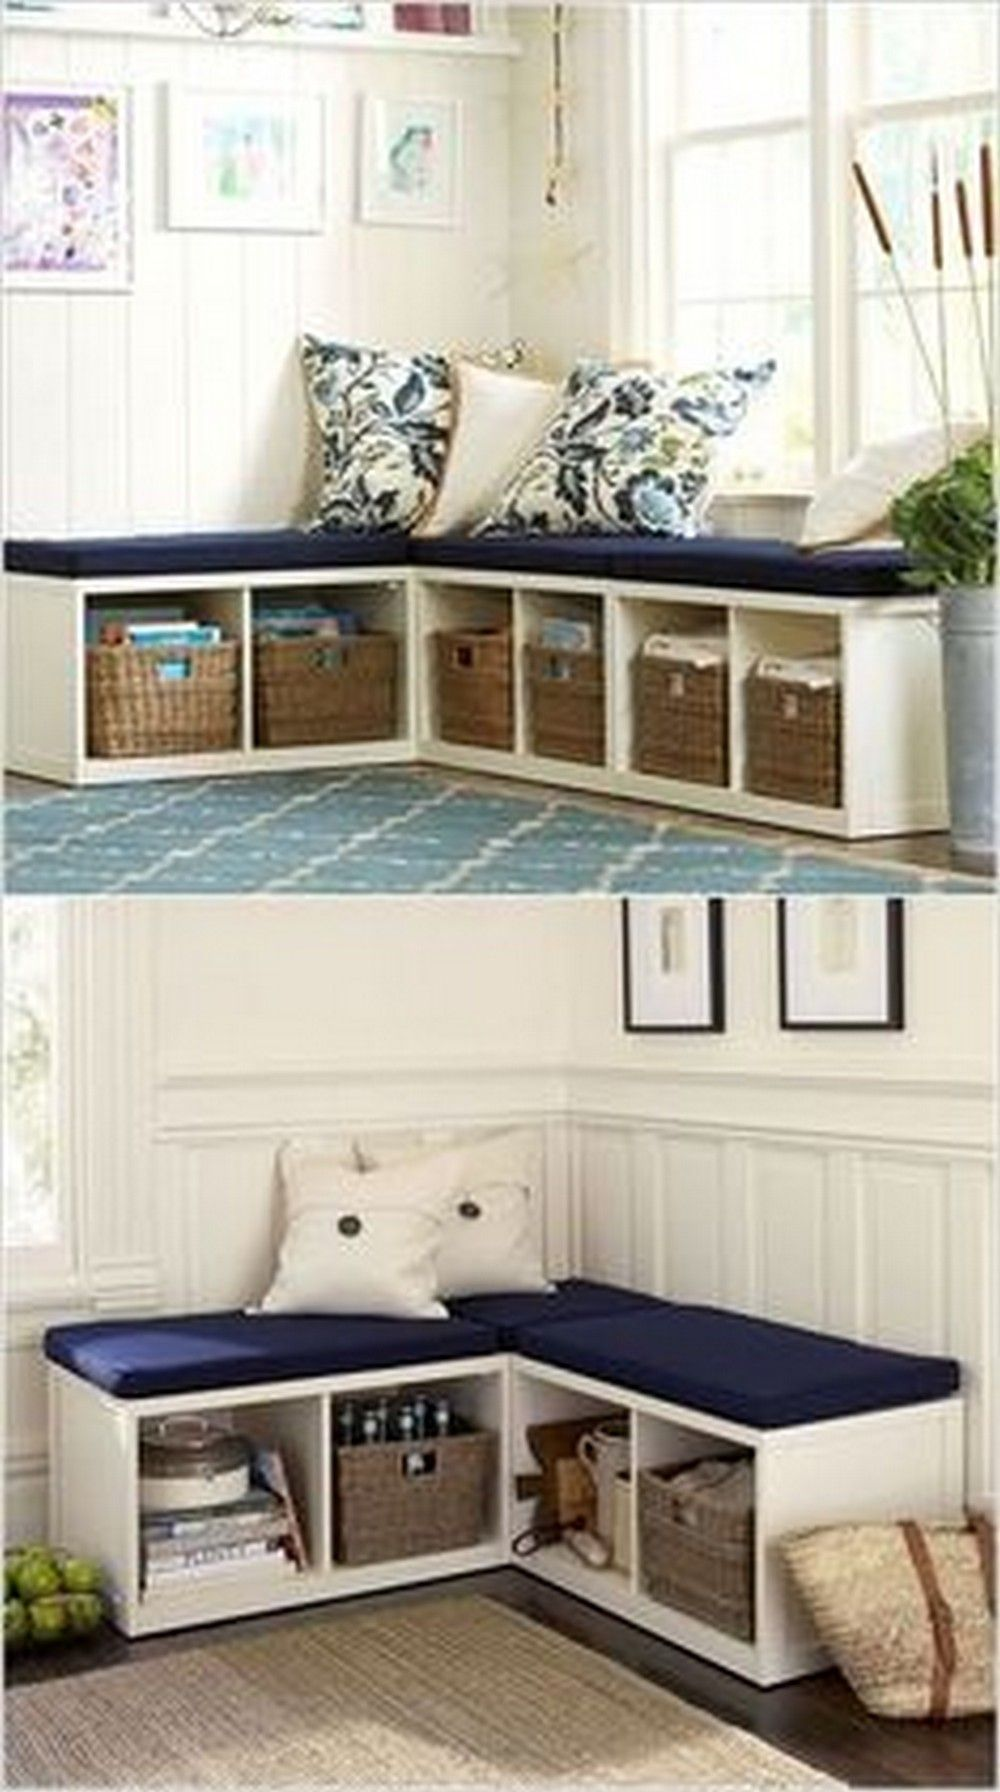 Cool 82 Incredible IKEA Hacks For Home Decoration Ideas  Https://homedecort.com. Corner Bench With StorageBook ...